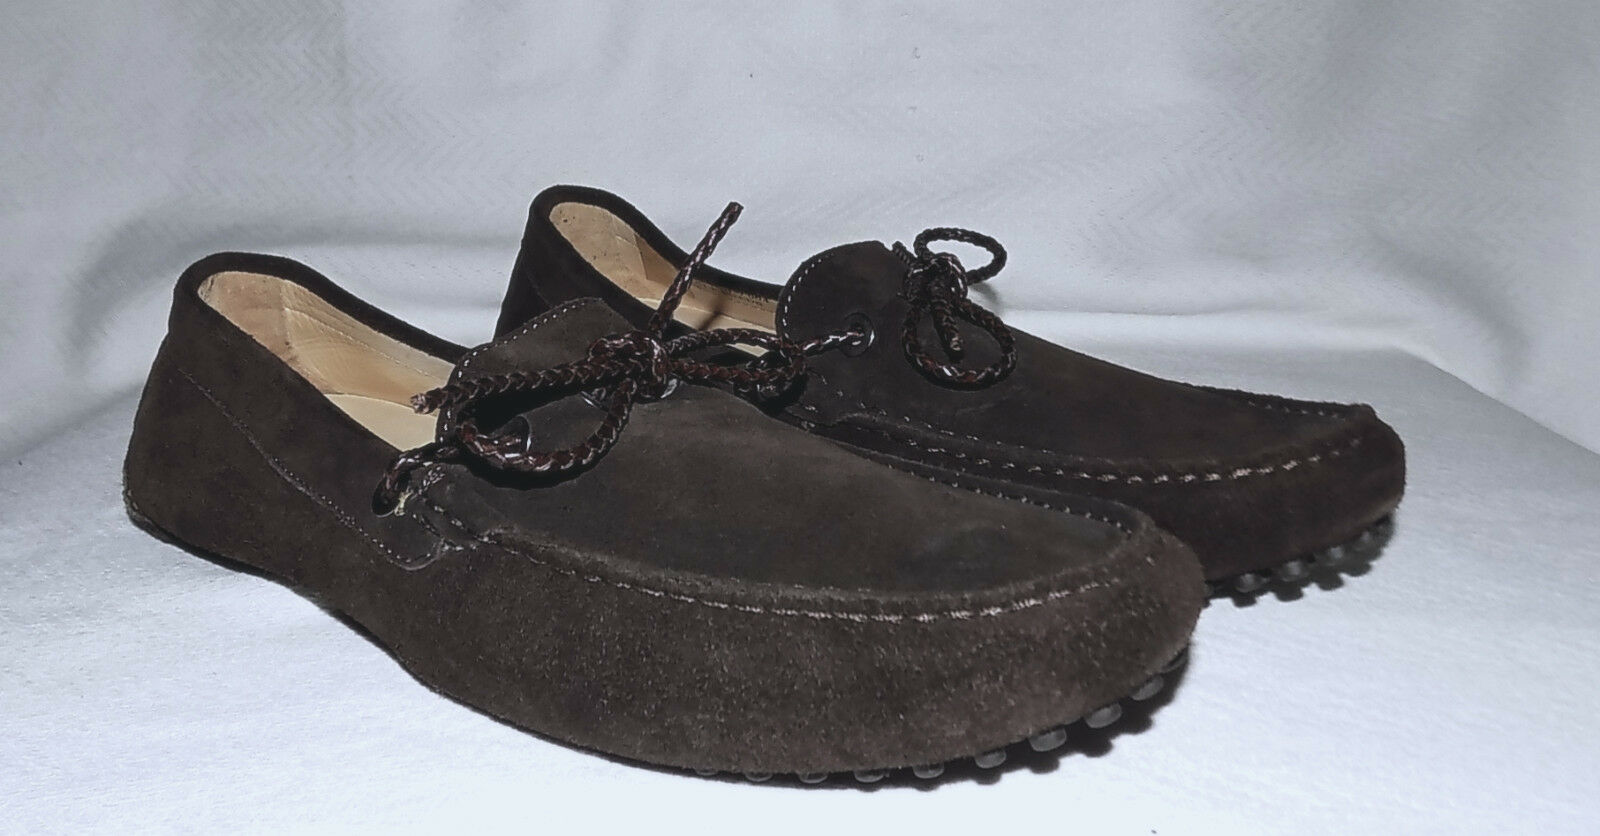 FACONNABLE -Genuine Leather Driving moccassins-Size 10 Usa-Brown-Excellent